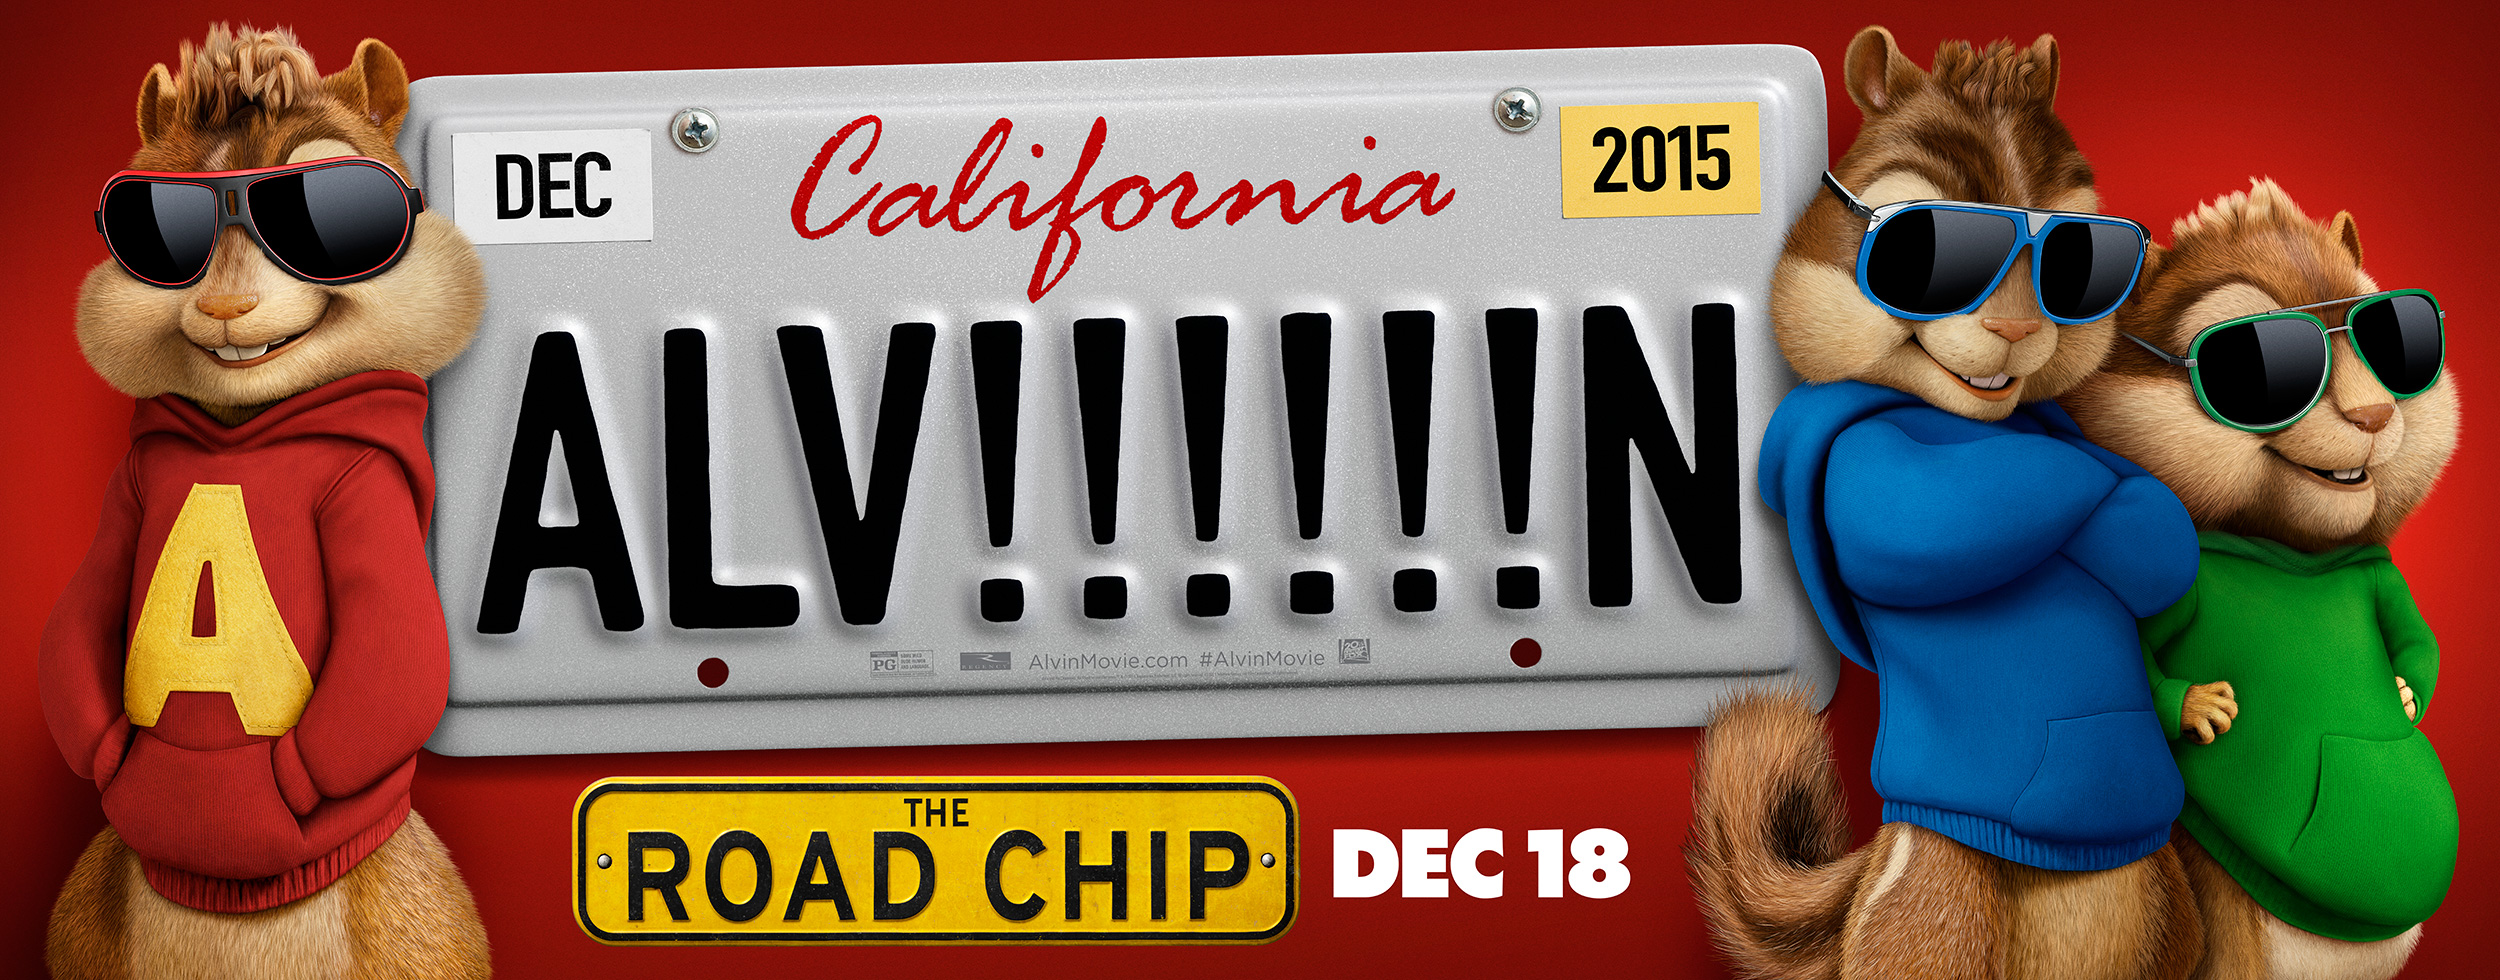 Alvin and the Chipmunks: The Road Chip | 405 Wall Finishing & Illustration